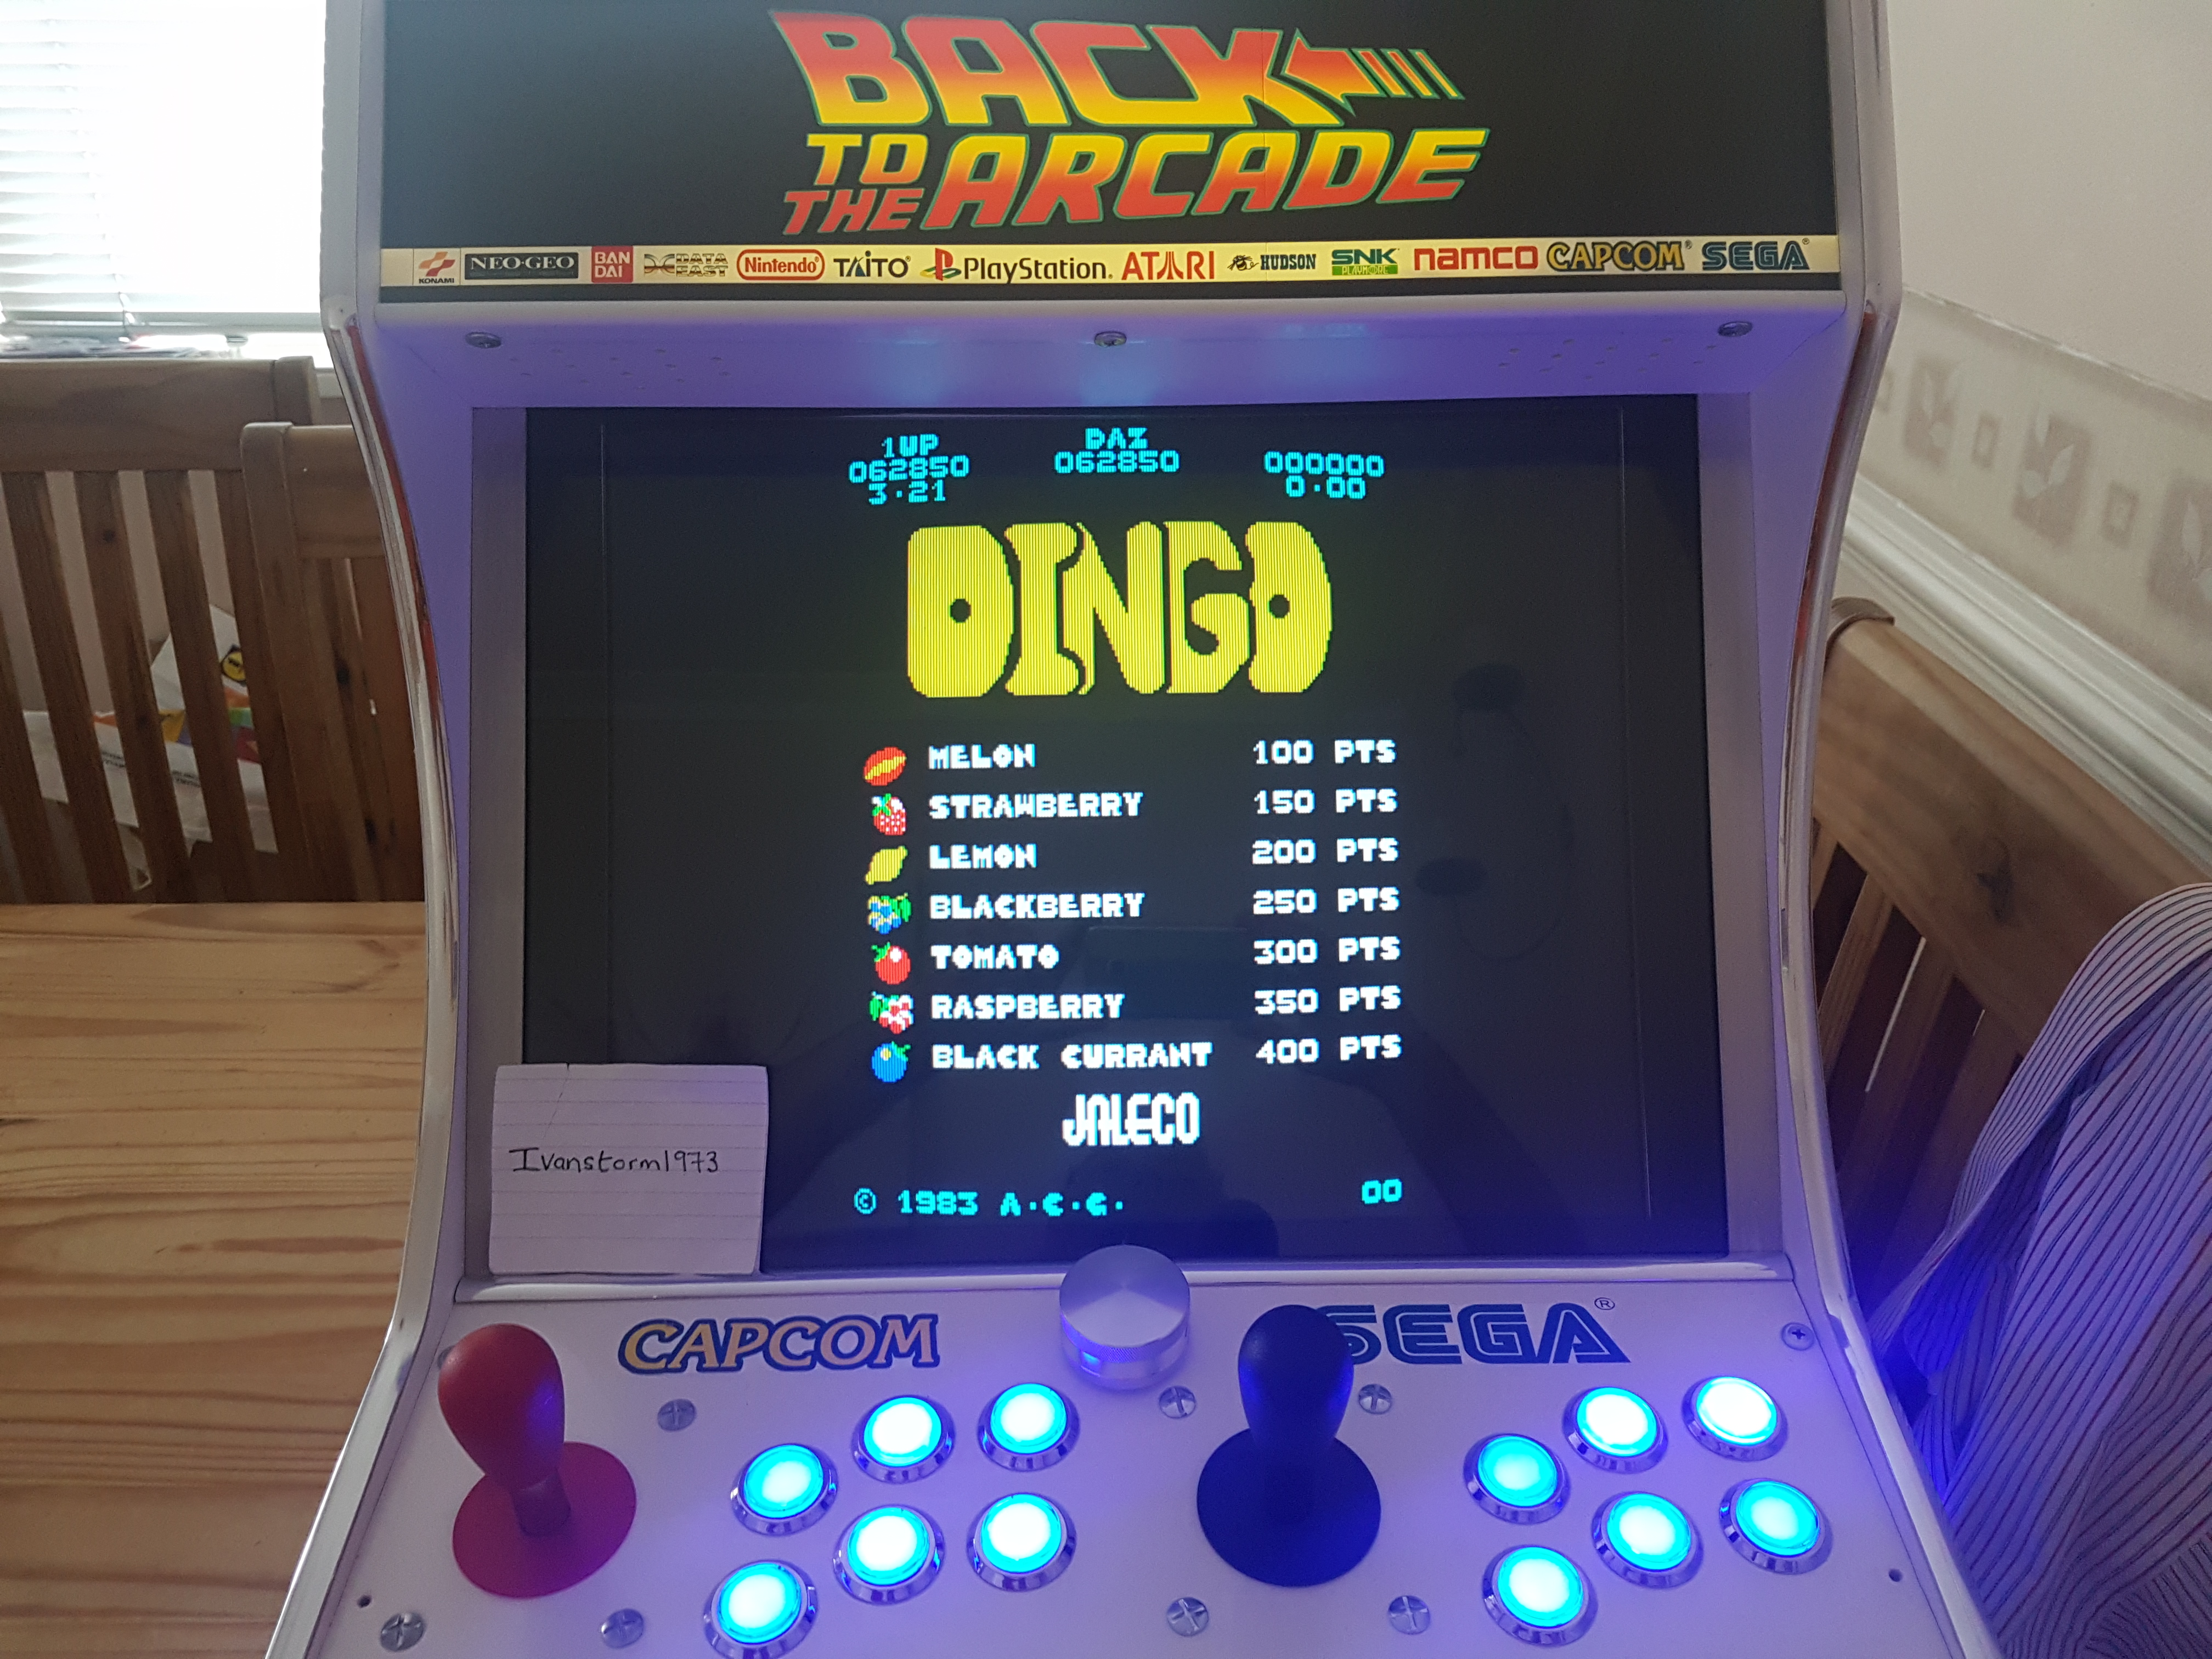 Dingo [dingo] 62,850 points